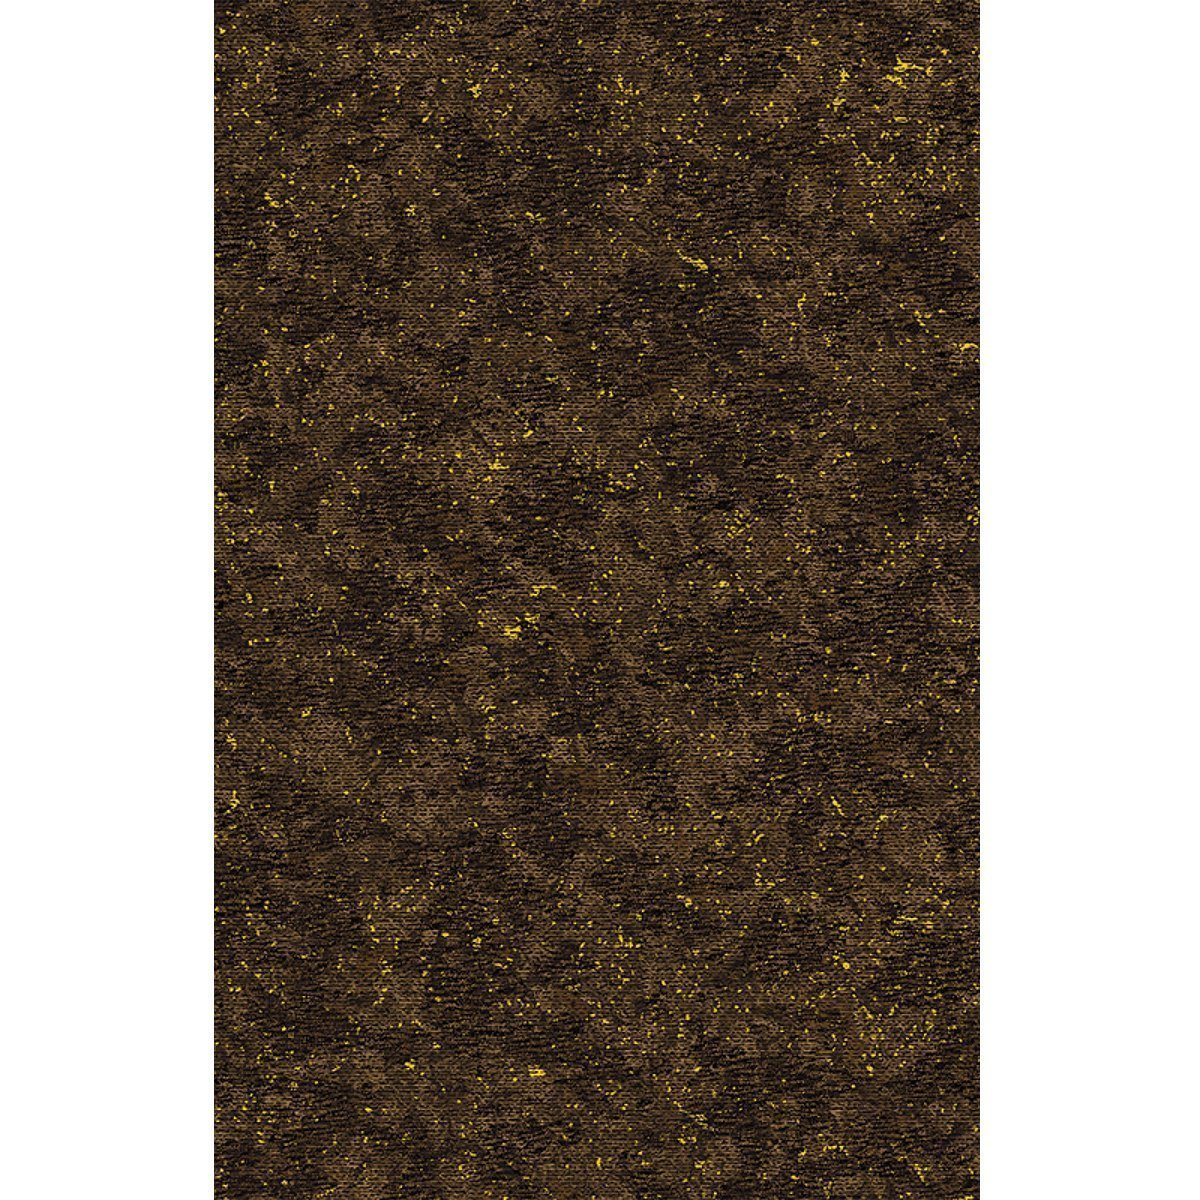 Moooi Bearded Leopard Behang Blackened Gold - 1 meter